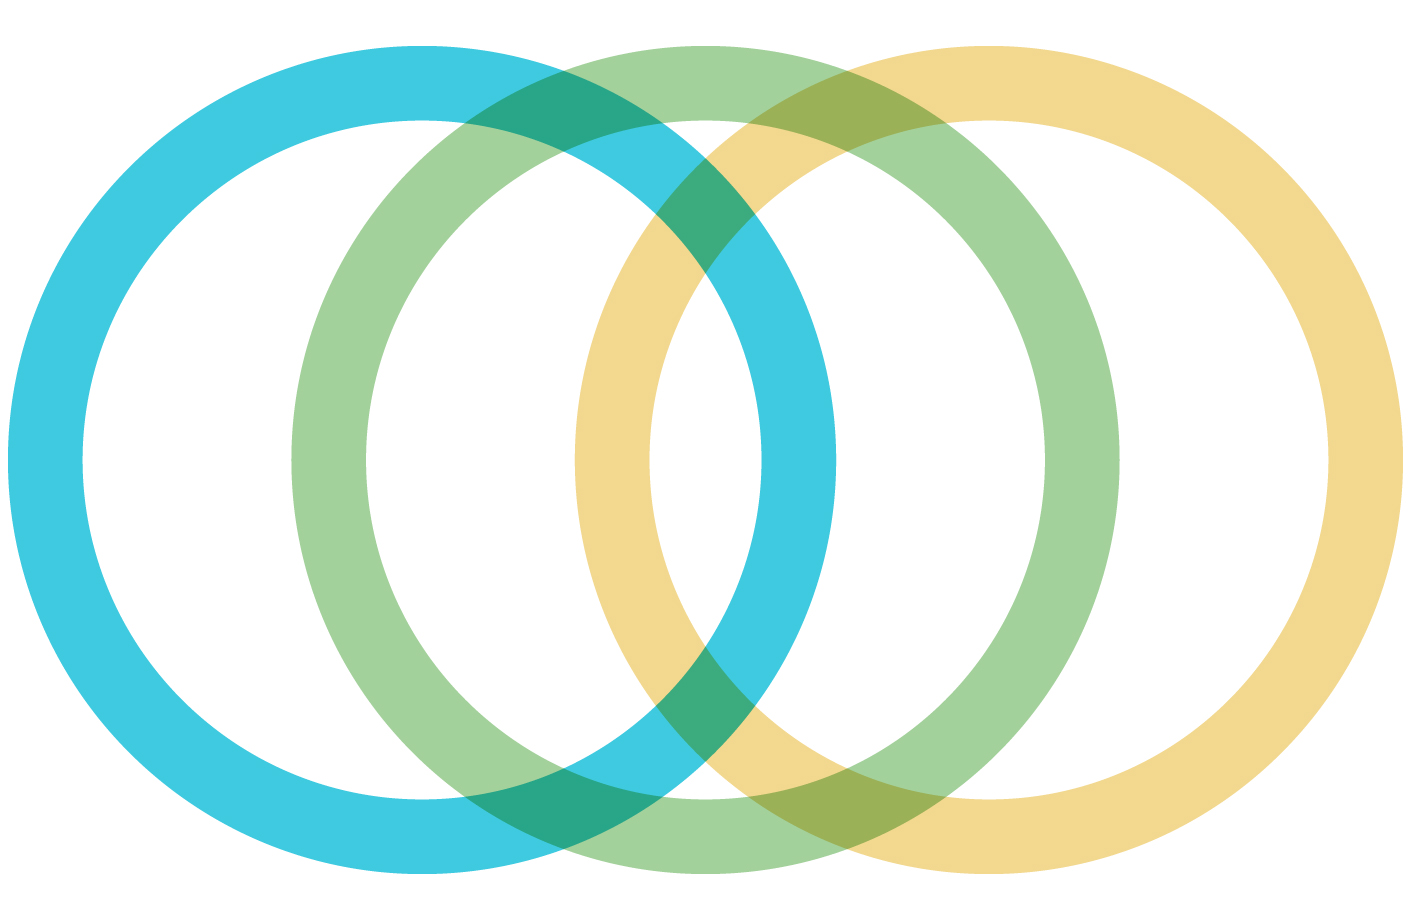 Three circles overlapping.